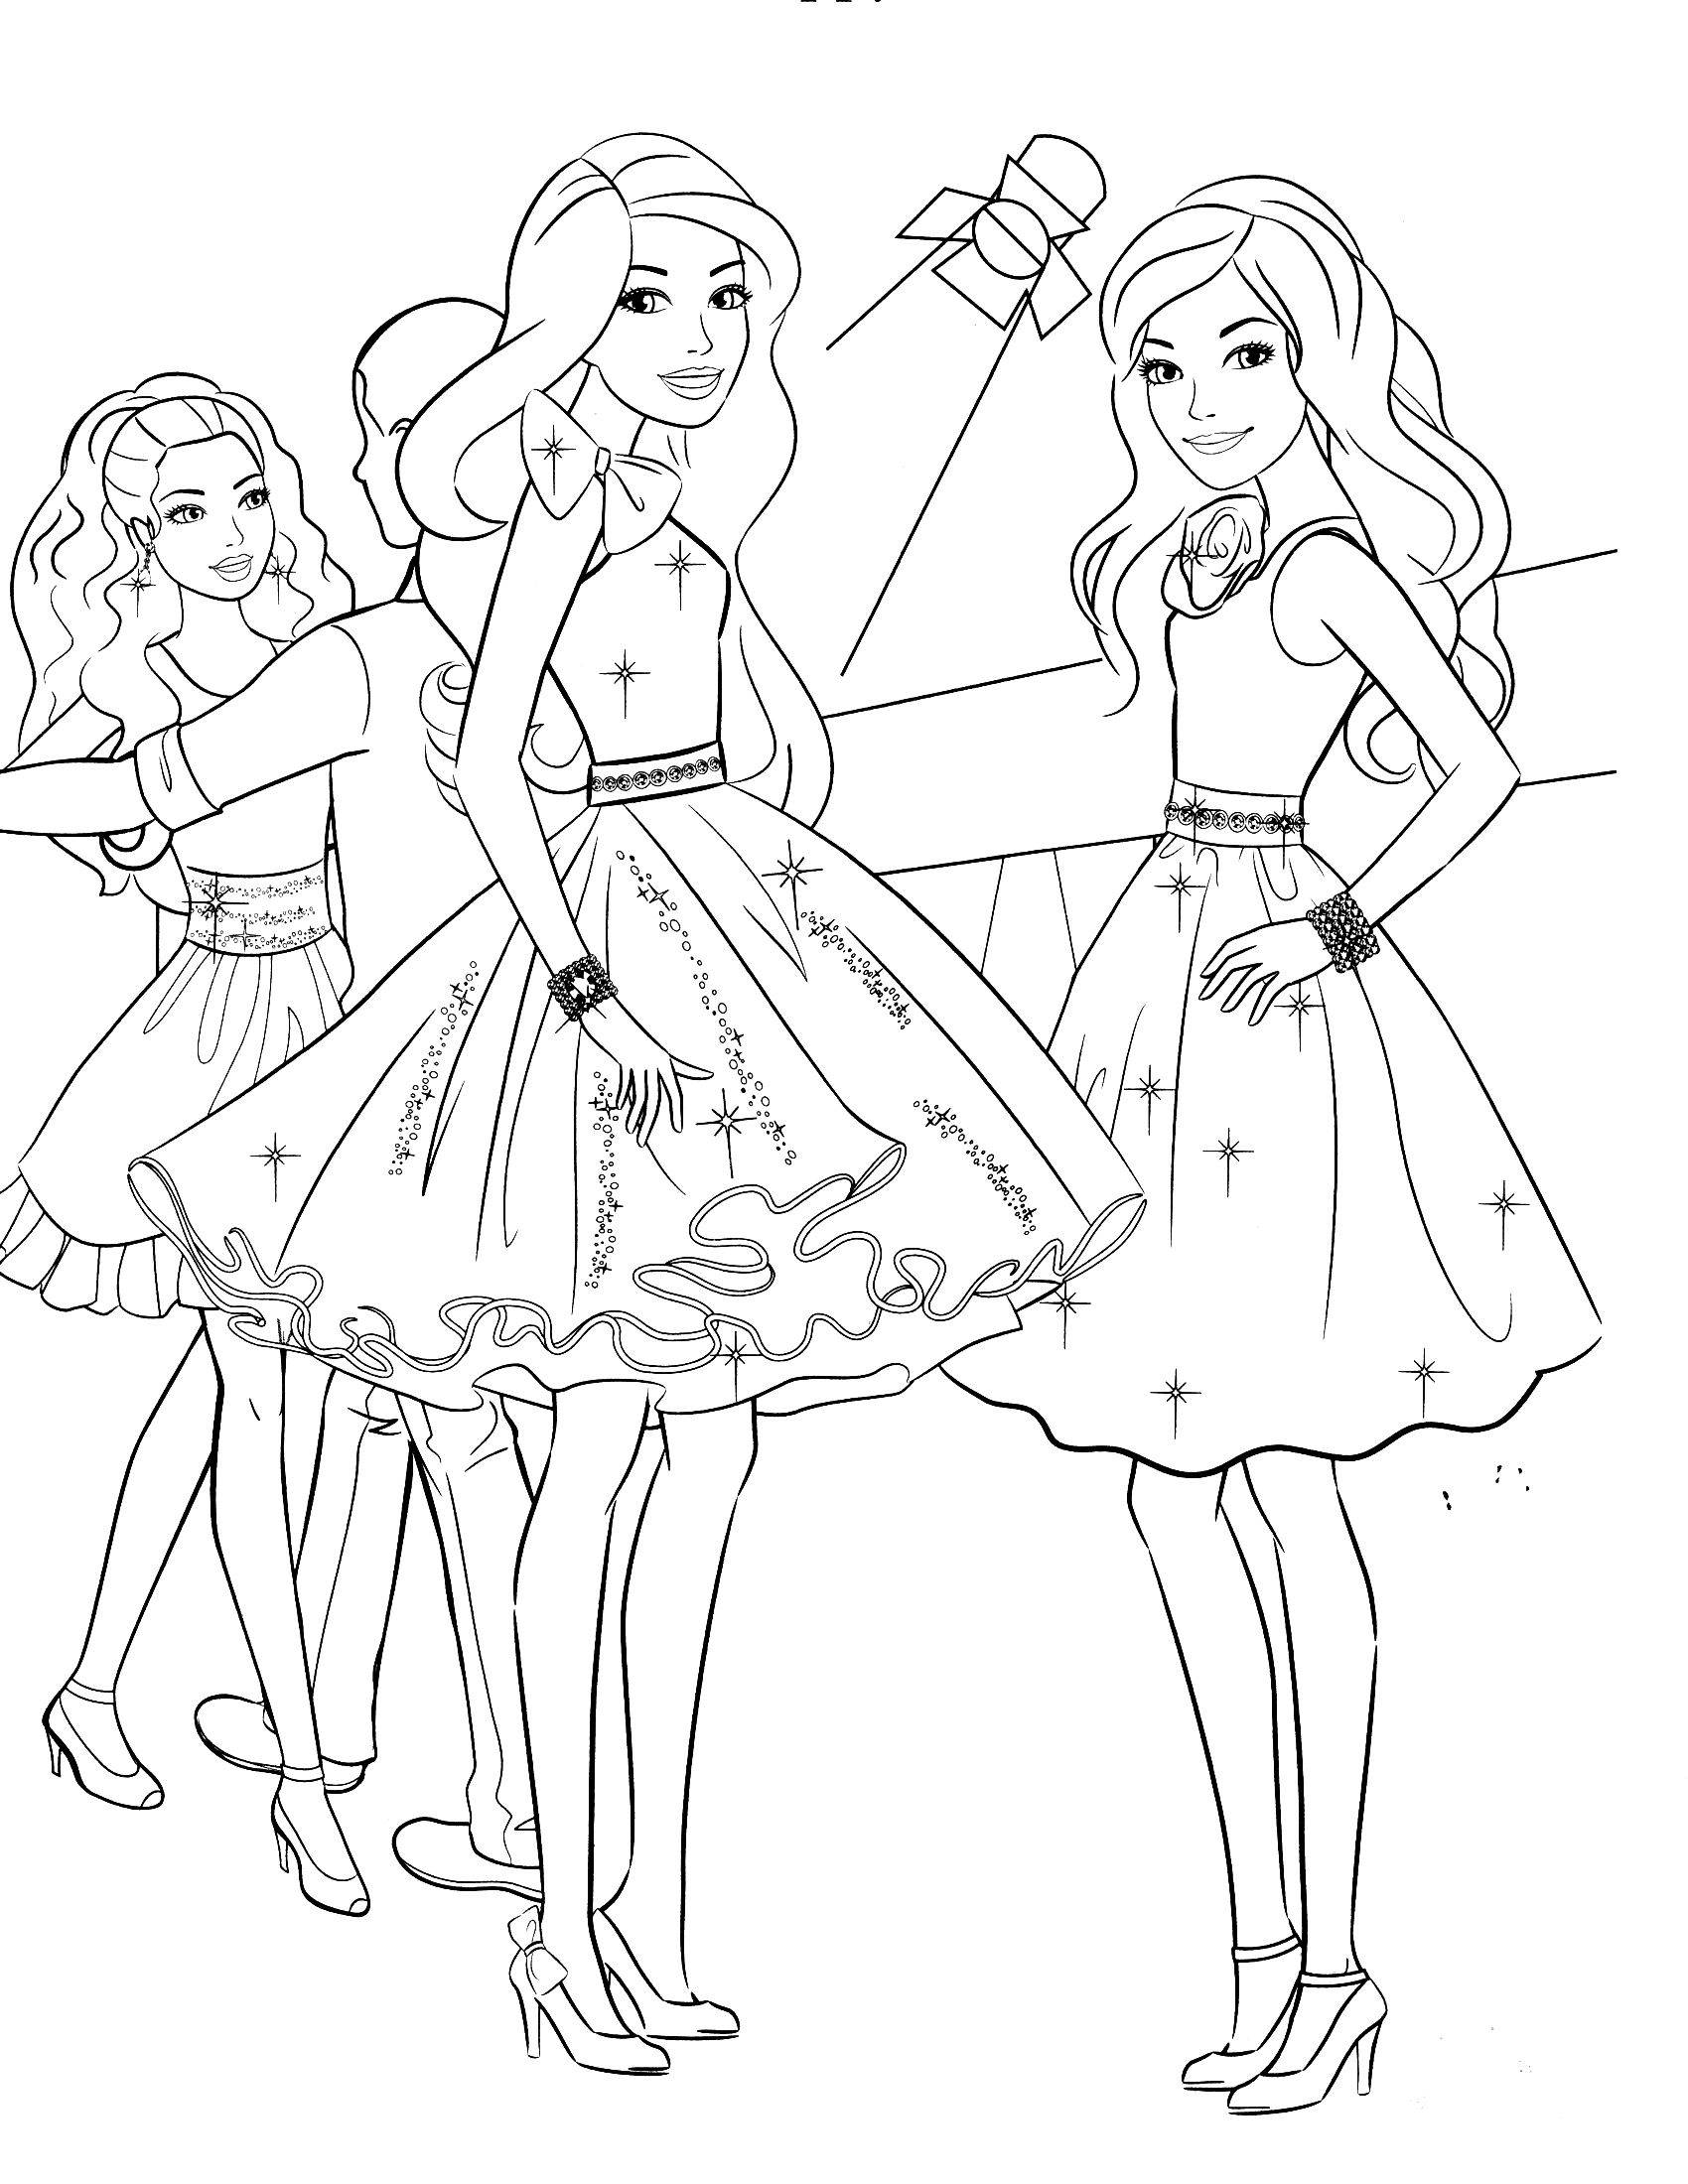 Online coloring book barbie - Barbie Doll The Princess Charm School Coloring Page M Larbilder Barbie Dockor Pinterest Princess Charm School Barbie Doll And Barbie